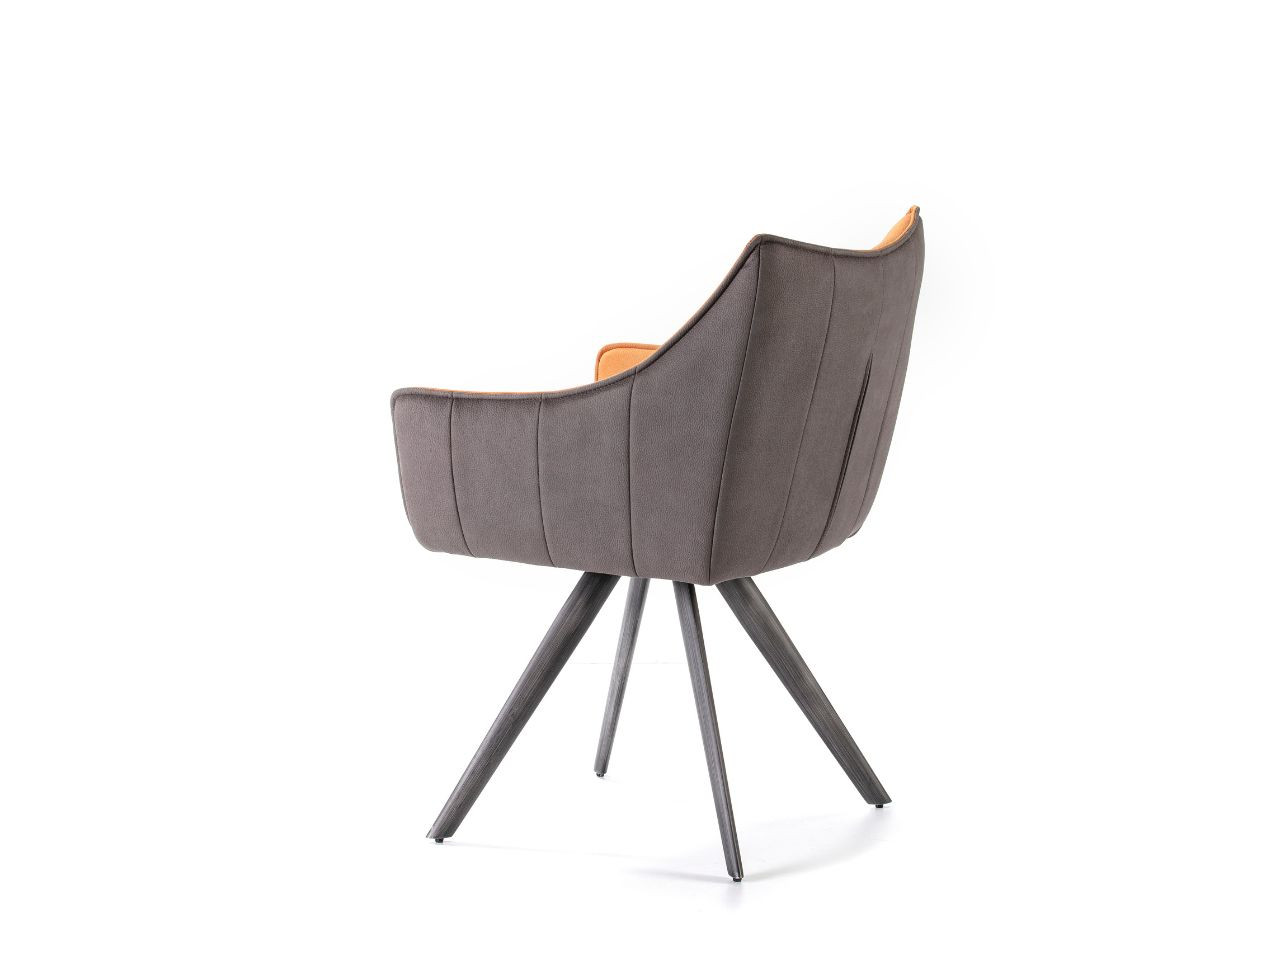 Ikea sofa 3 plazas great three seater sofa elegant for Sofas grandes modernos